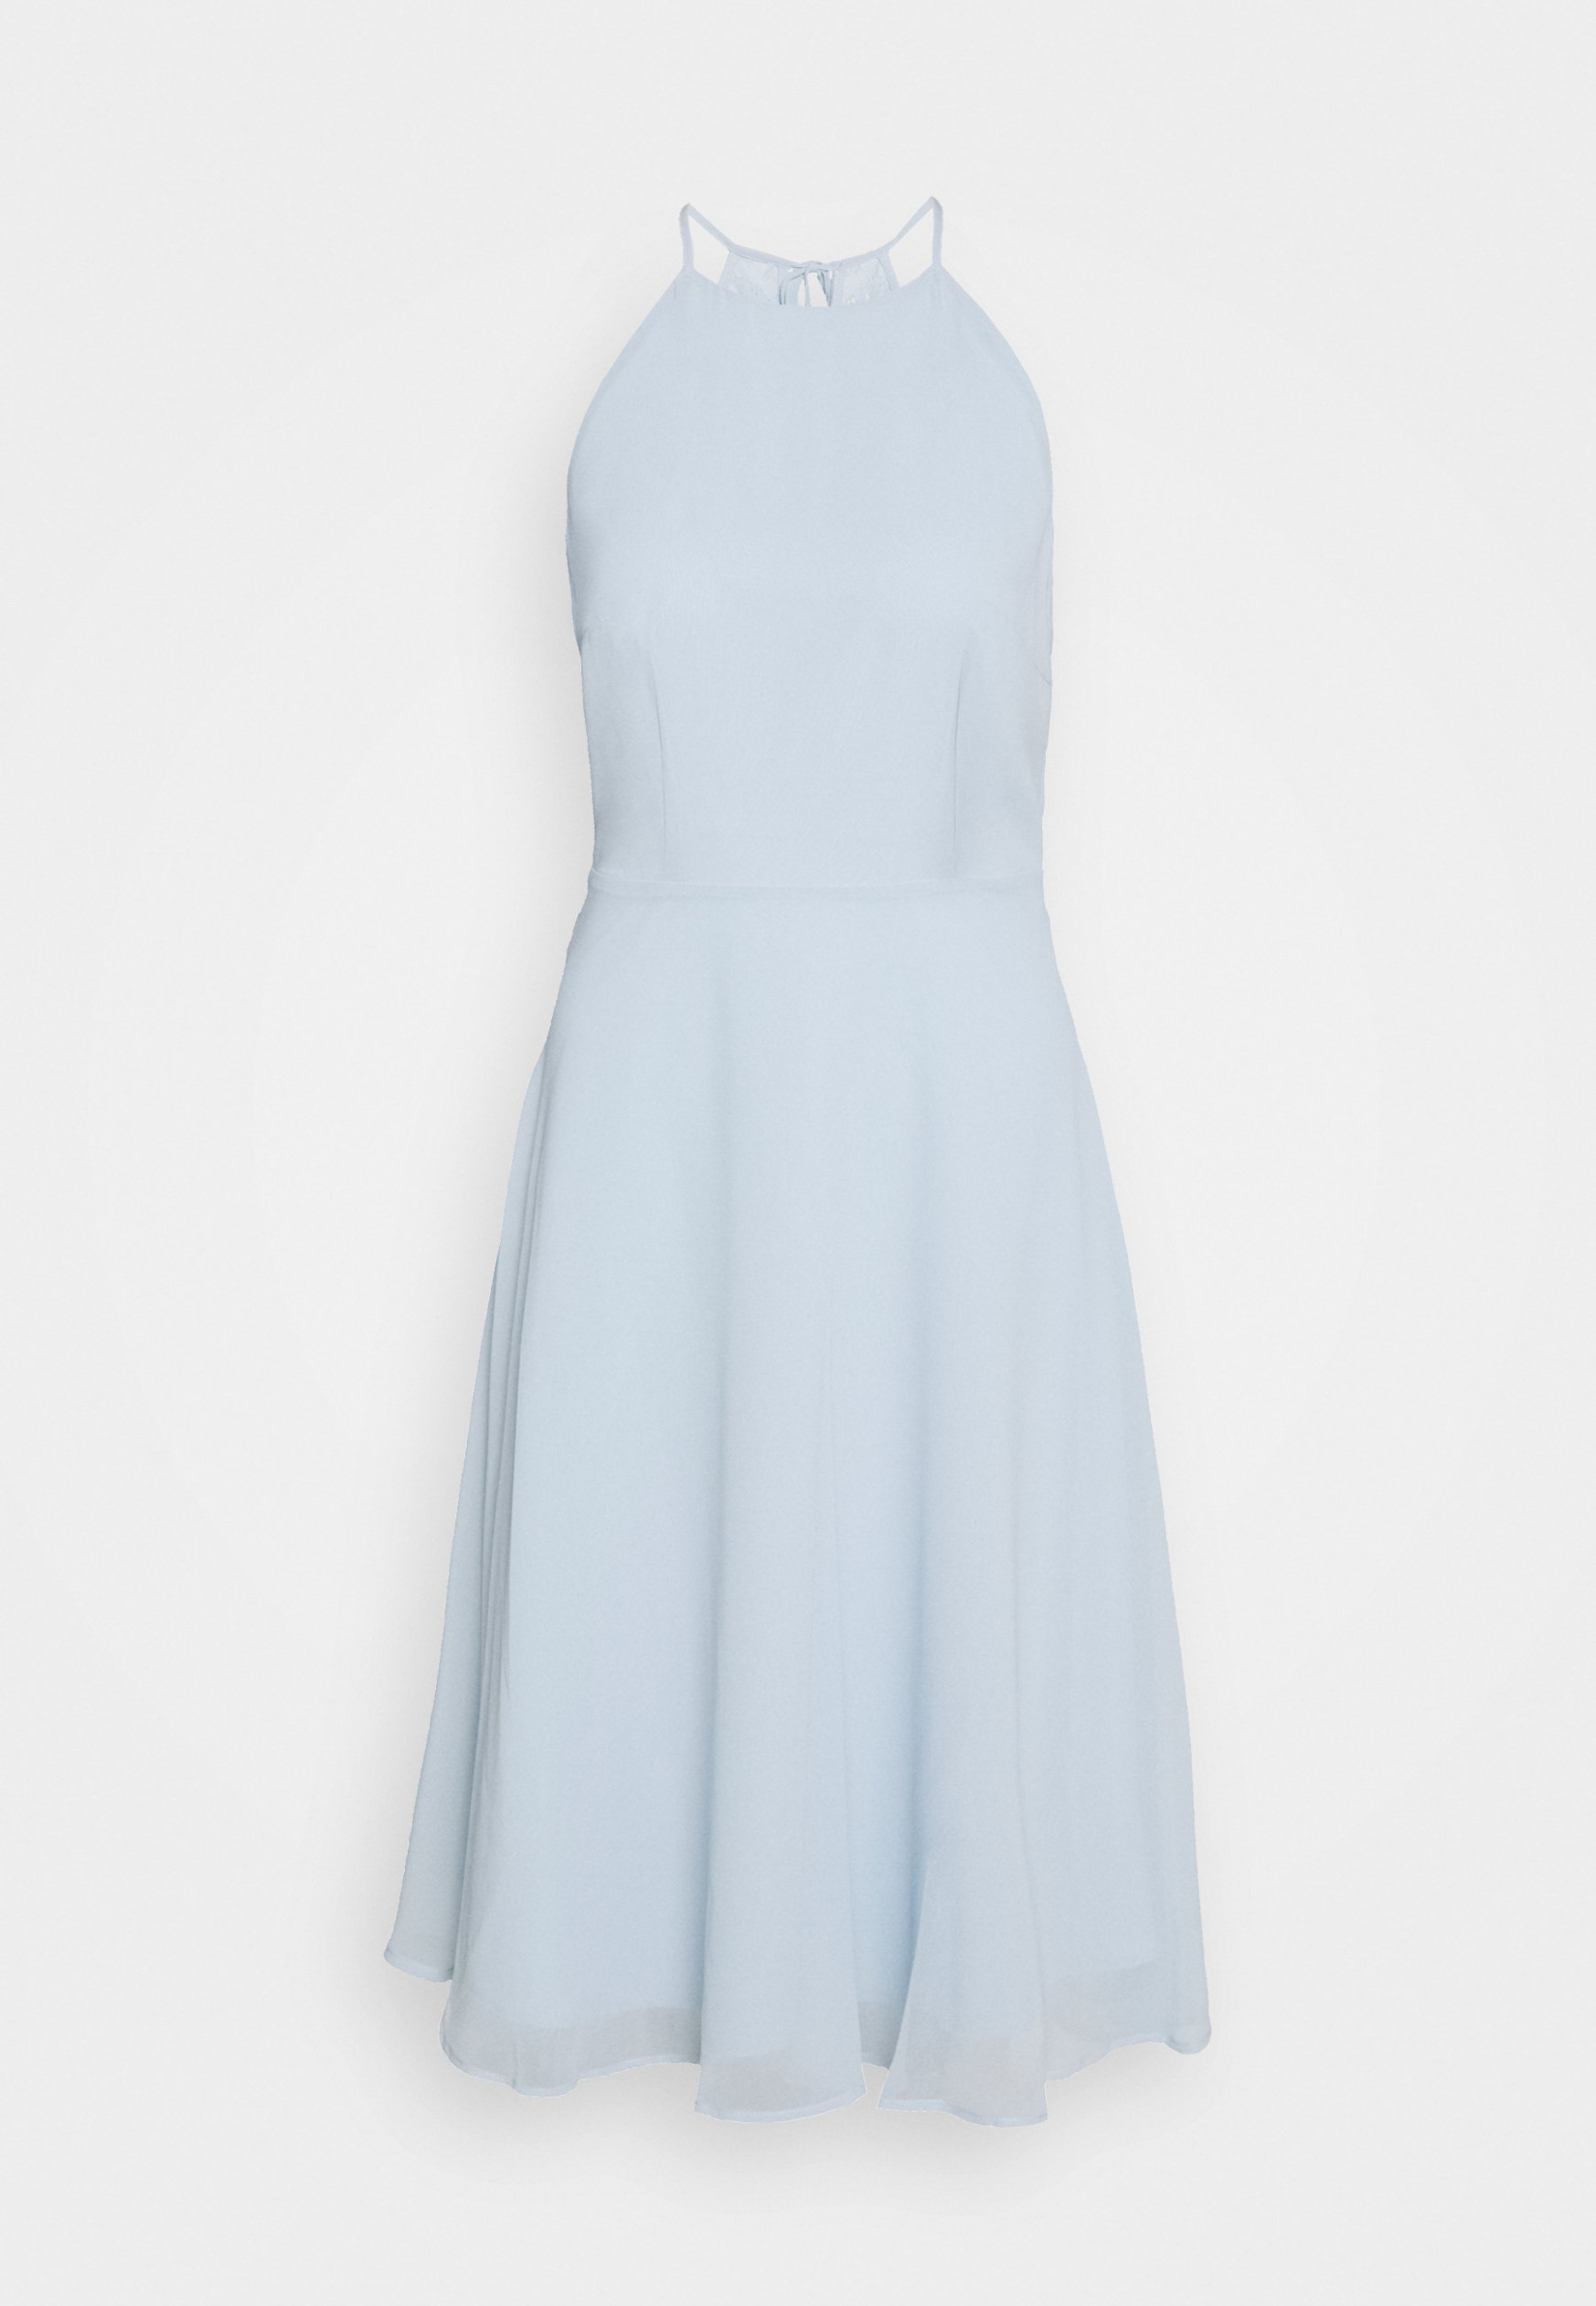 cocktailkleid/festliches kleid pastel blue cocktailkleid hellblau